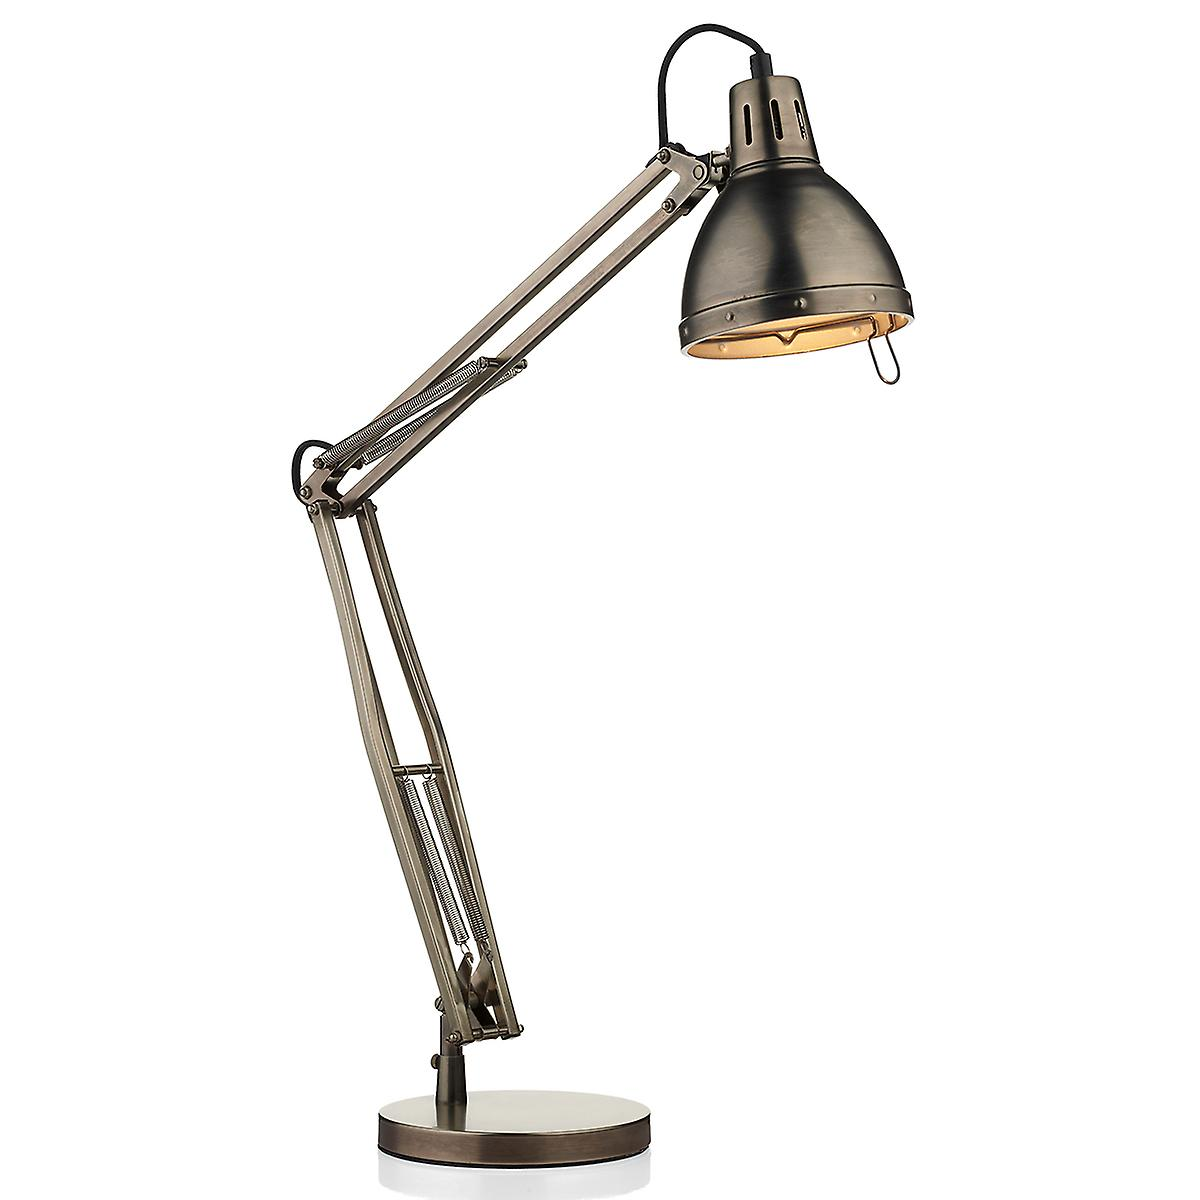 Dar OSA4061 Osaka Adjustable Table Lamp In Antique Chrome